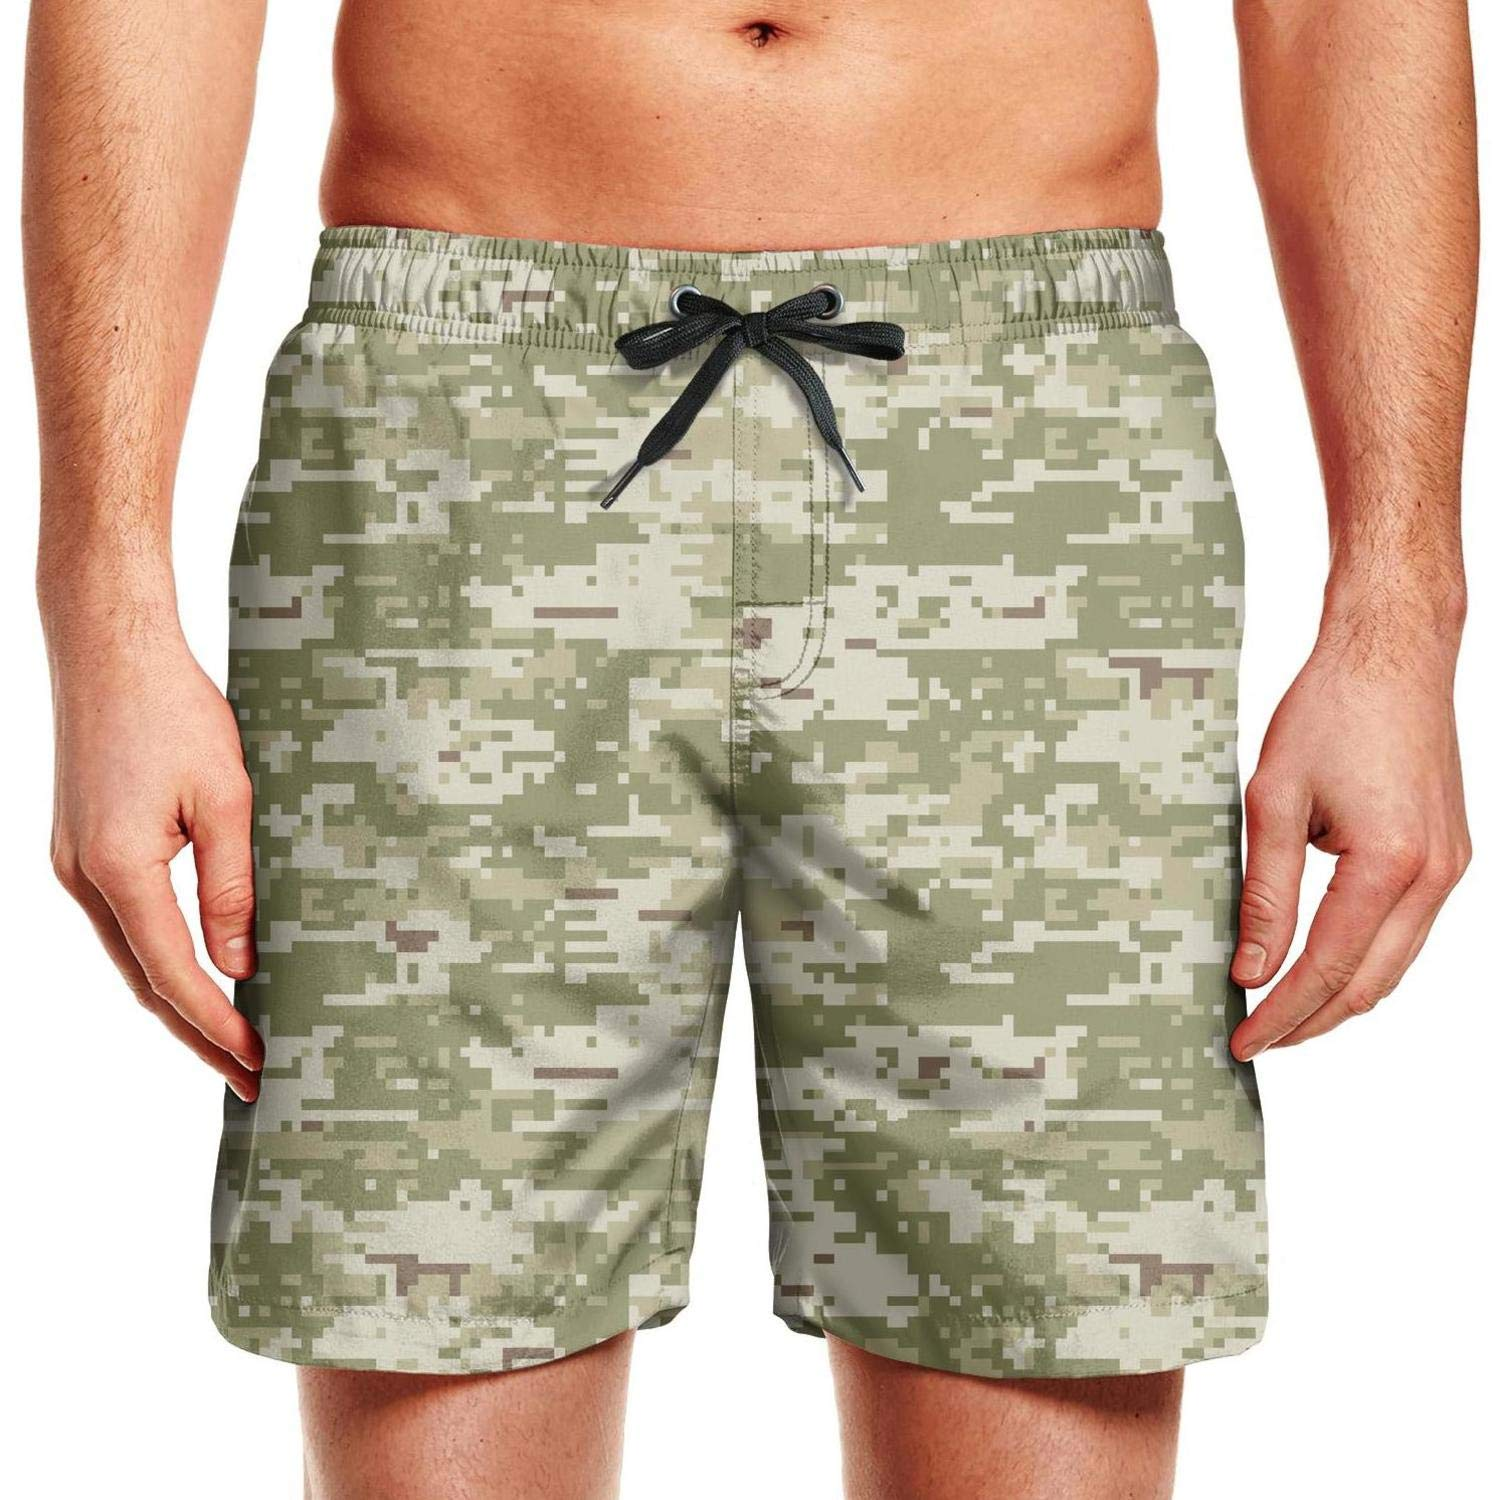 Camouflage Leopard Print Army Board Shorts Swim Beach Shorts for Man Quick Dry